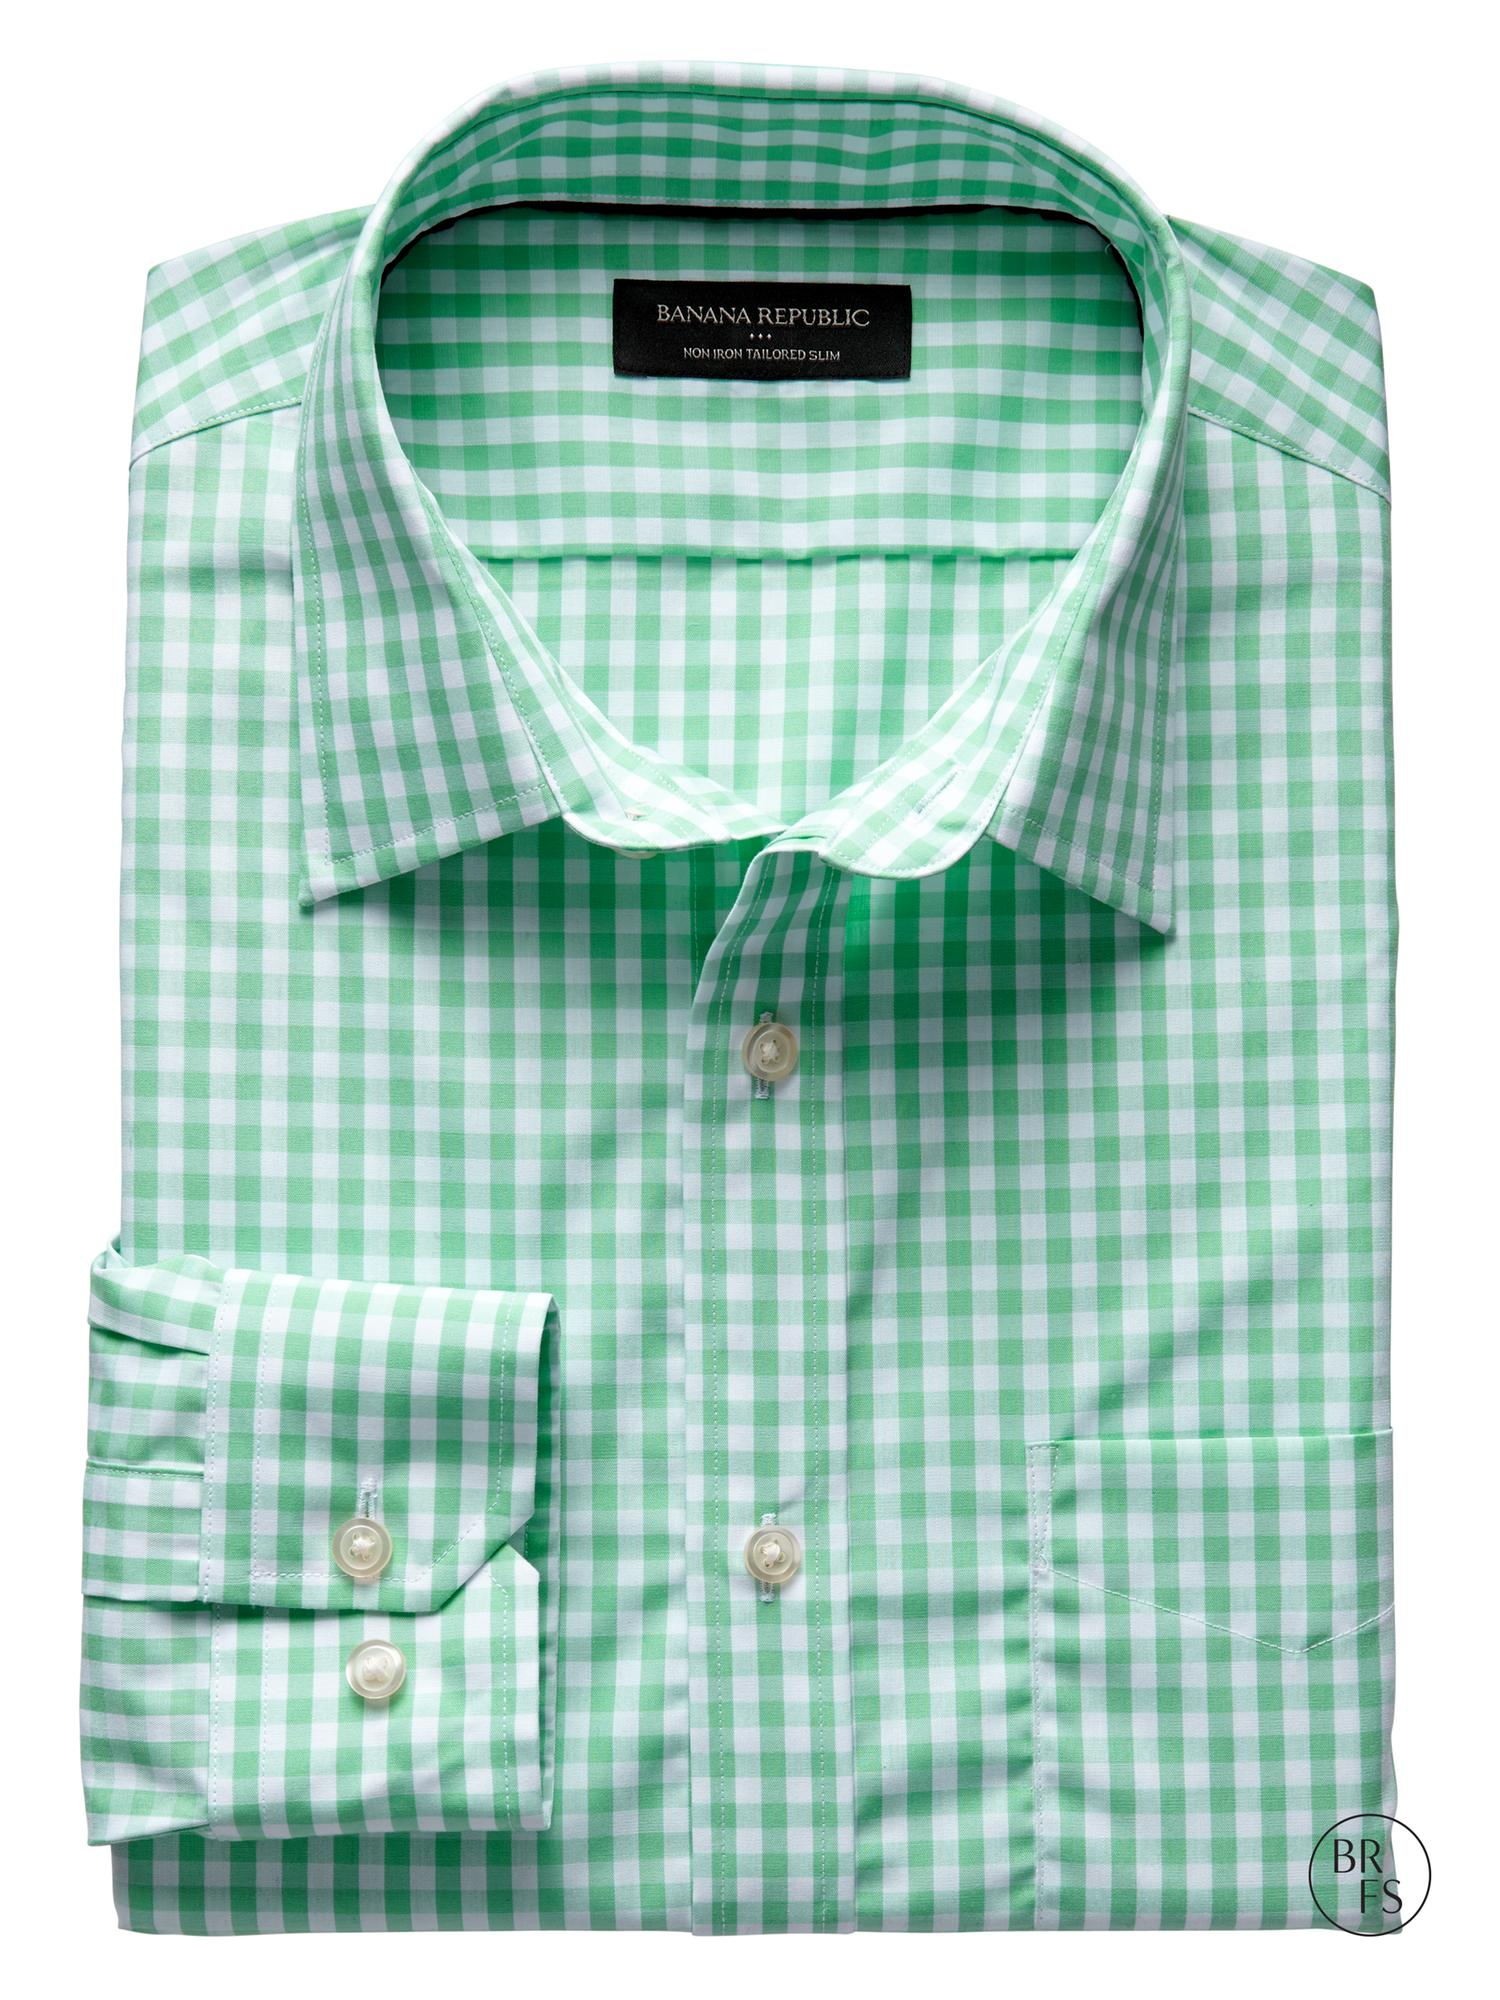 Banana Republic Factory Tailored Slim Fit Non Iron Gingham